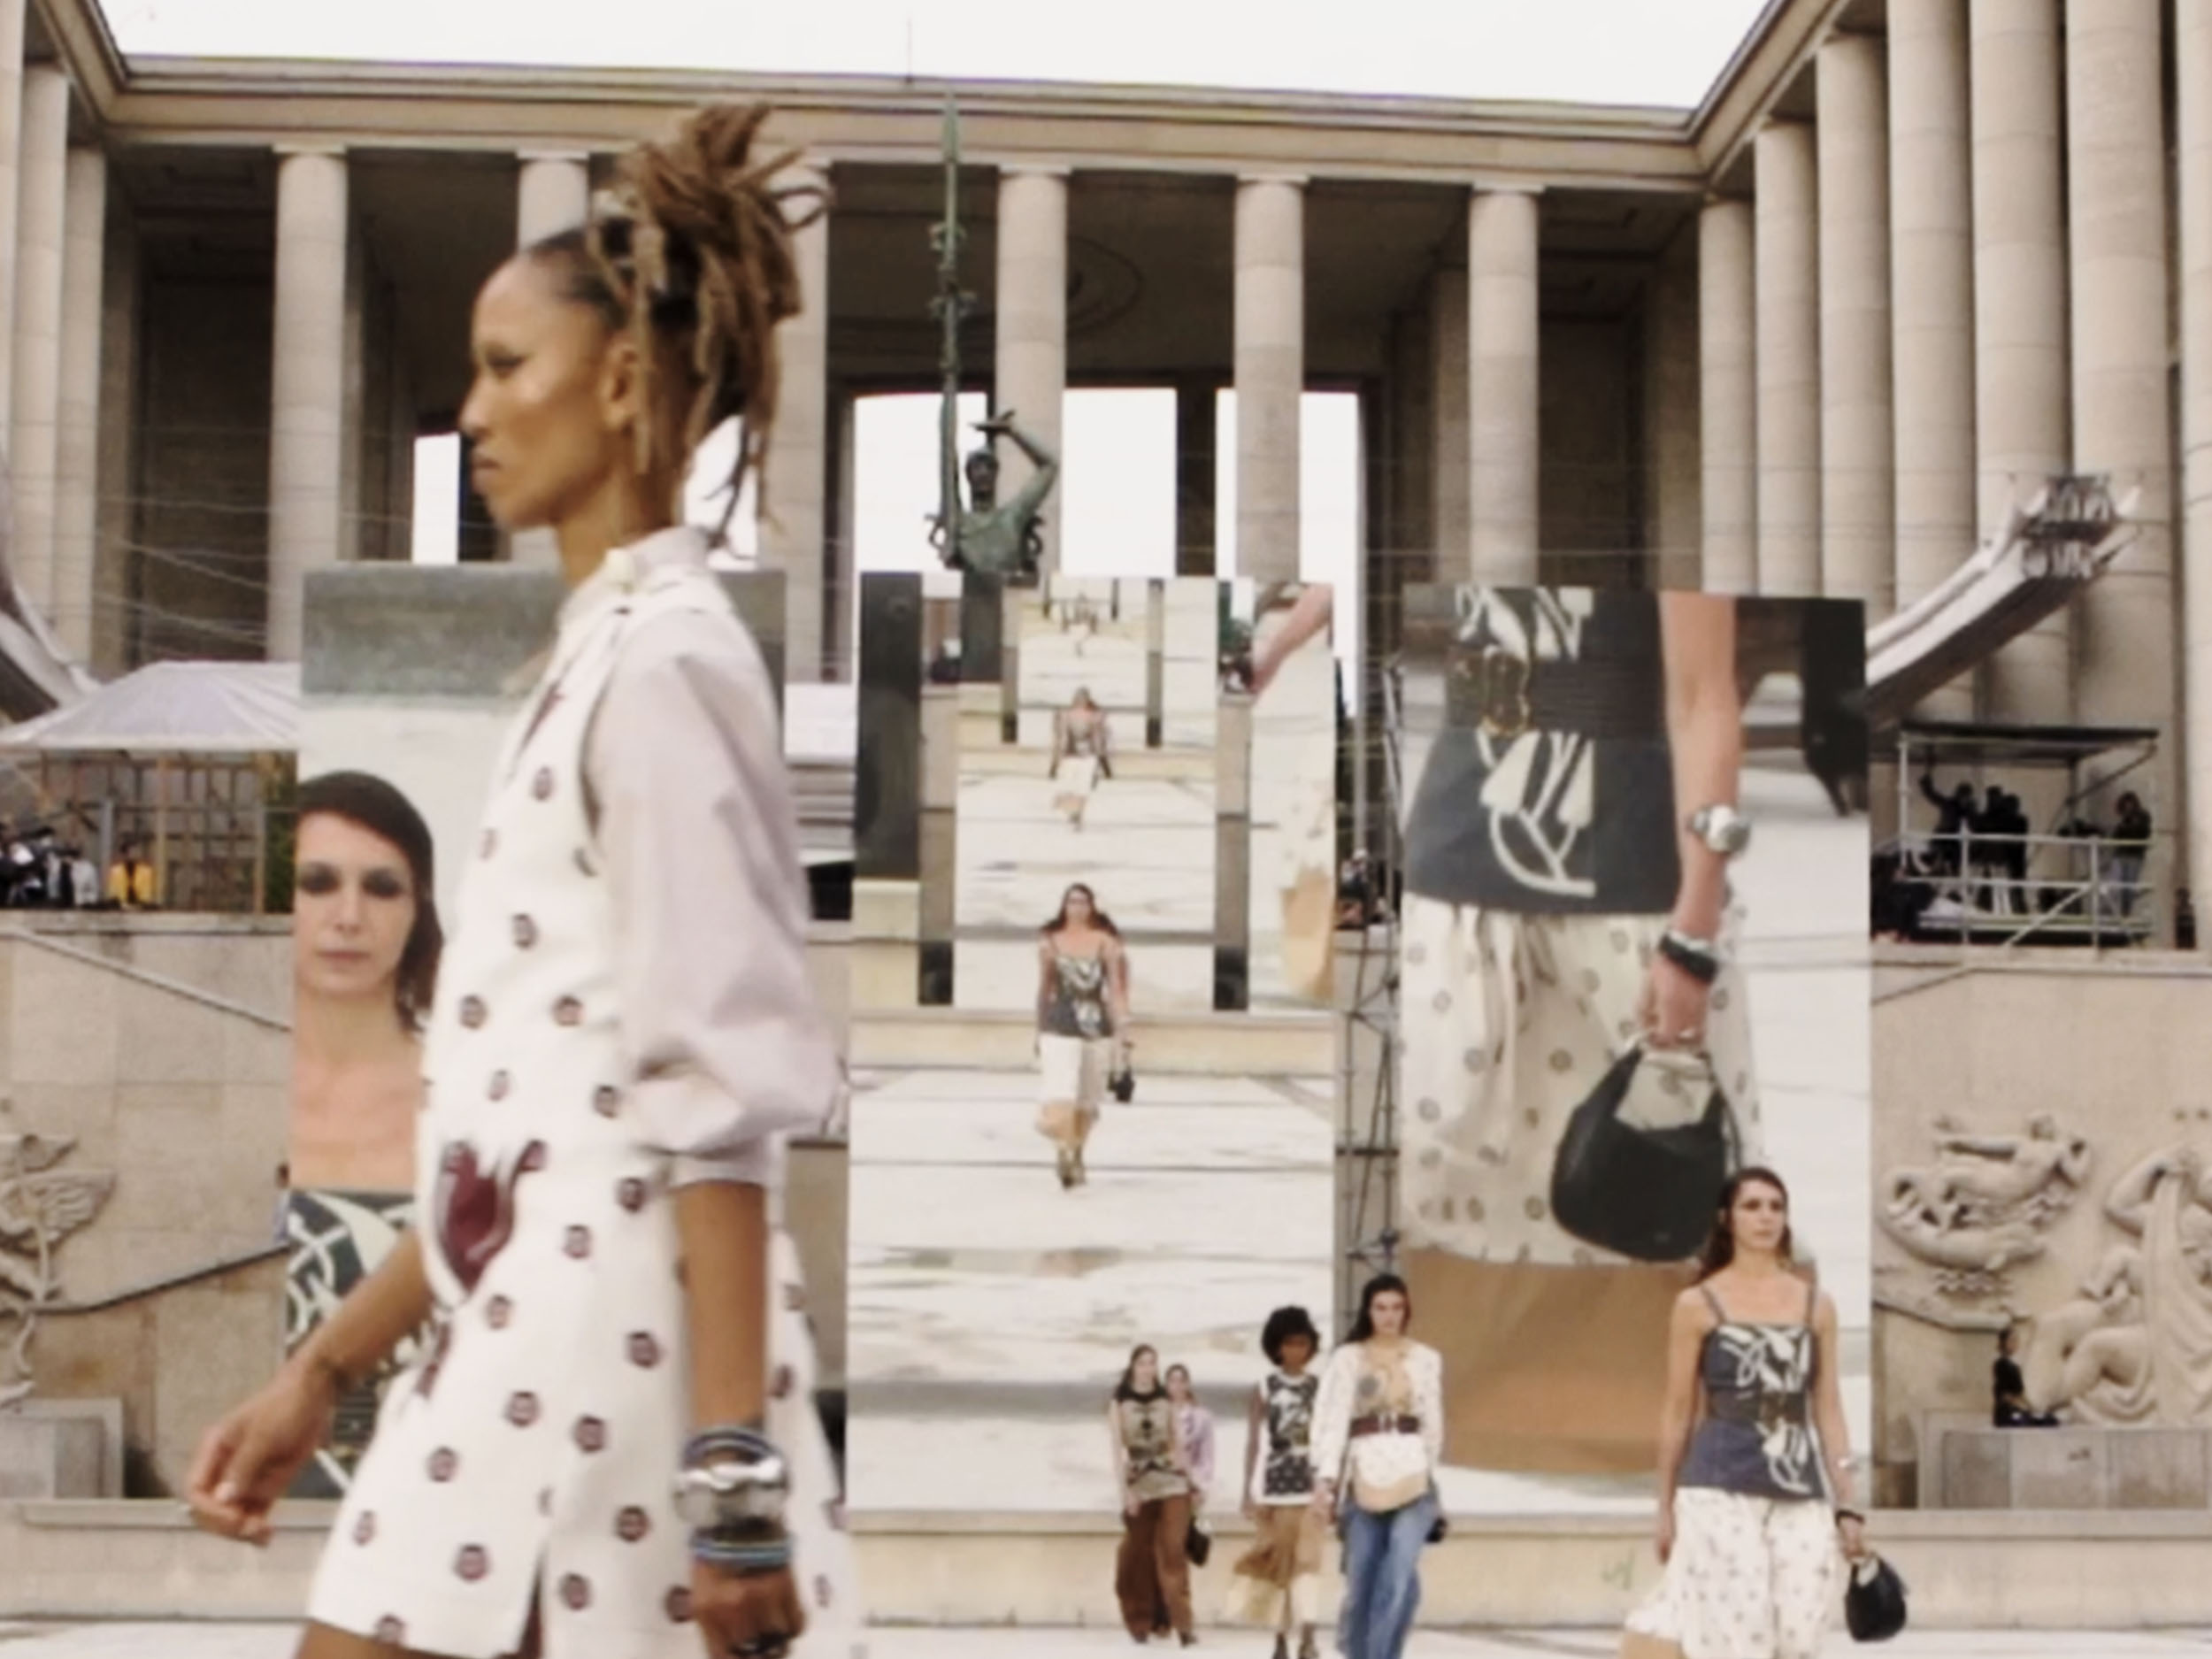 Chloe's Spring/Summer 2021 collection is an immersive lesson in hope